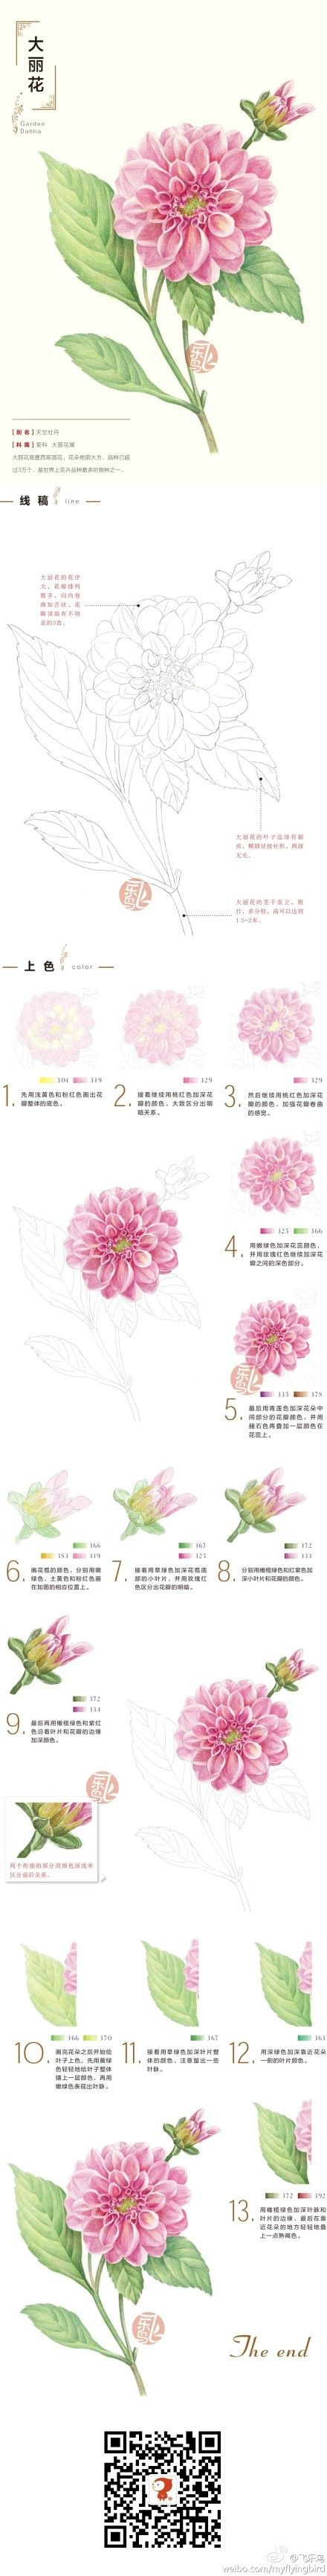 How to draw and paint a Dahlia